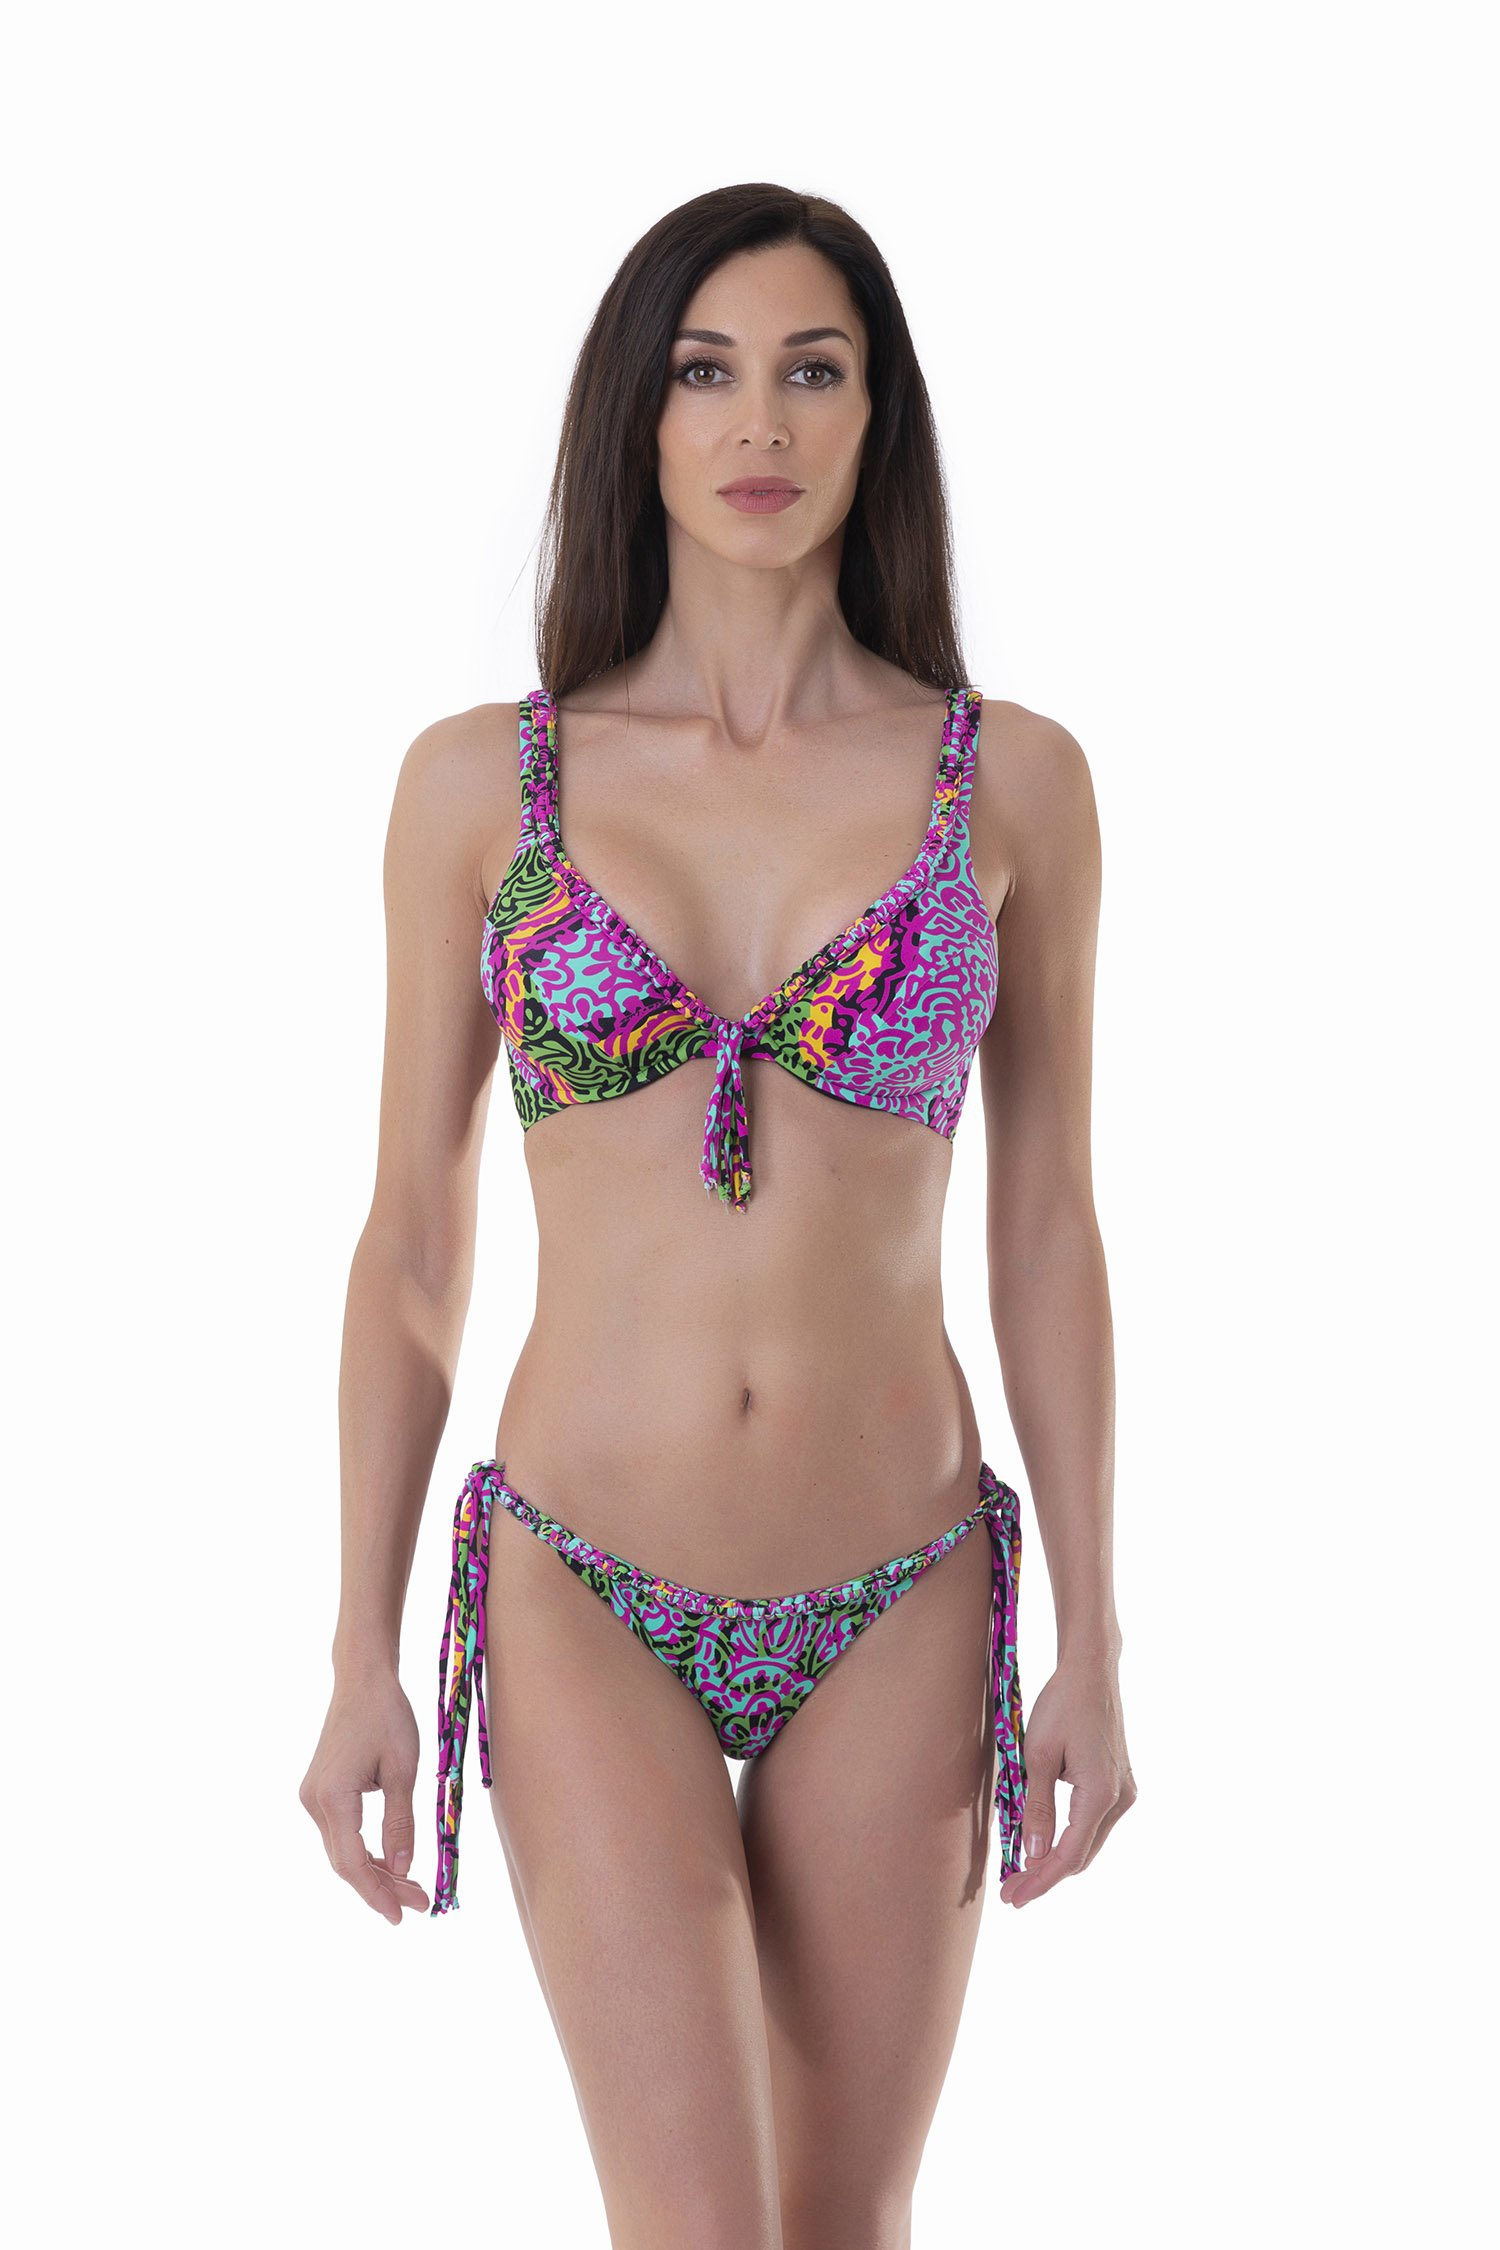 LUXE PRINTED UNDERWIRE HALTER TRIANGLE BIKINI - India Pop Fuxia